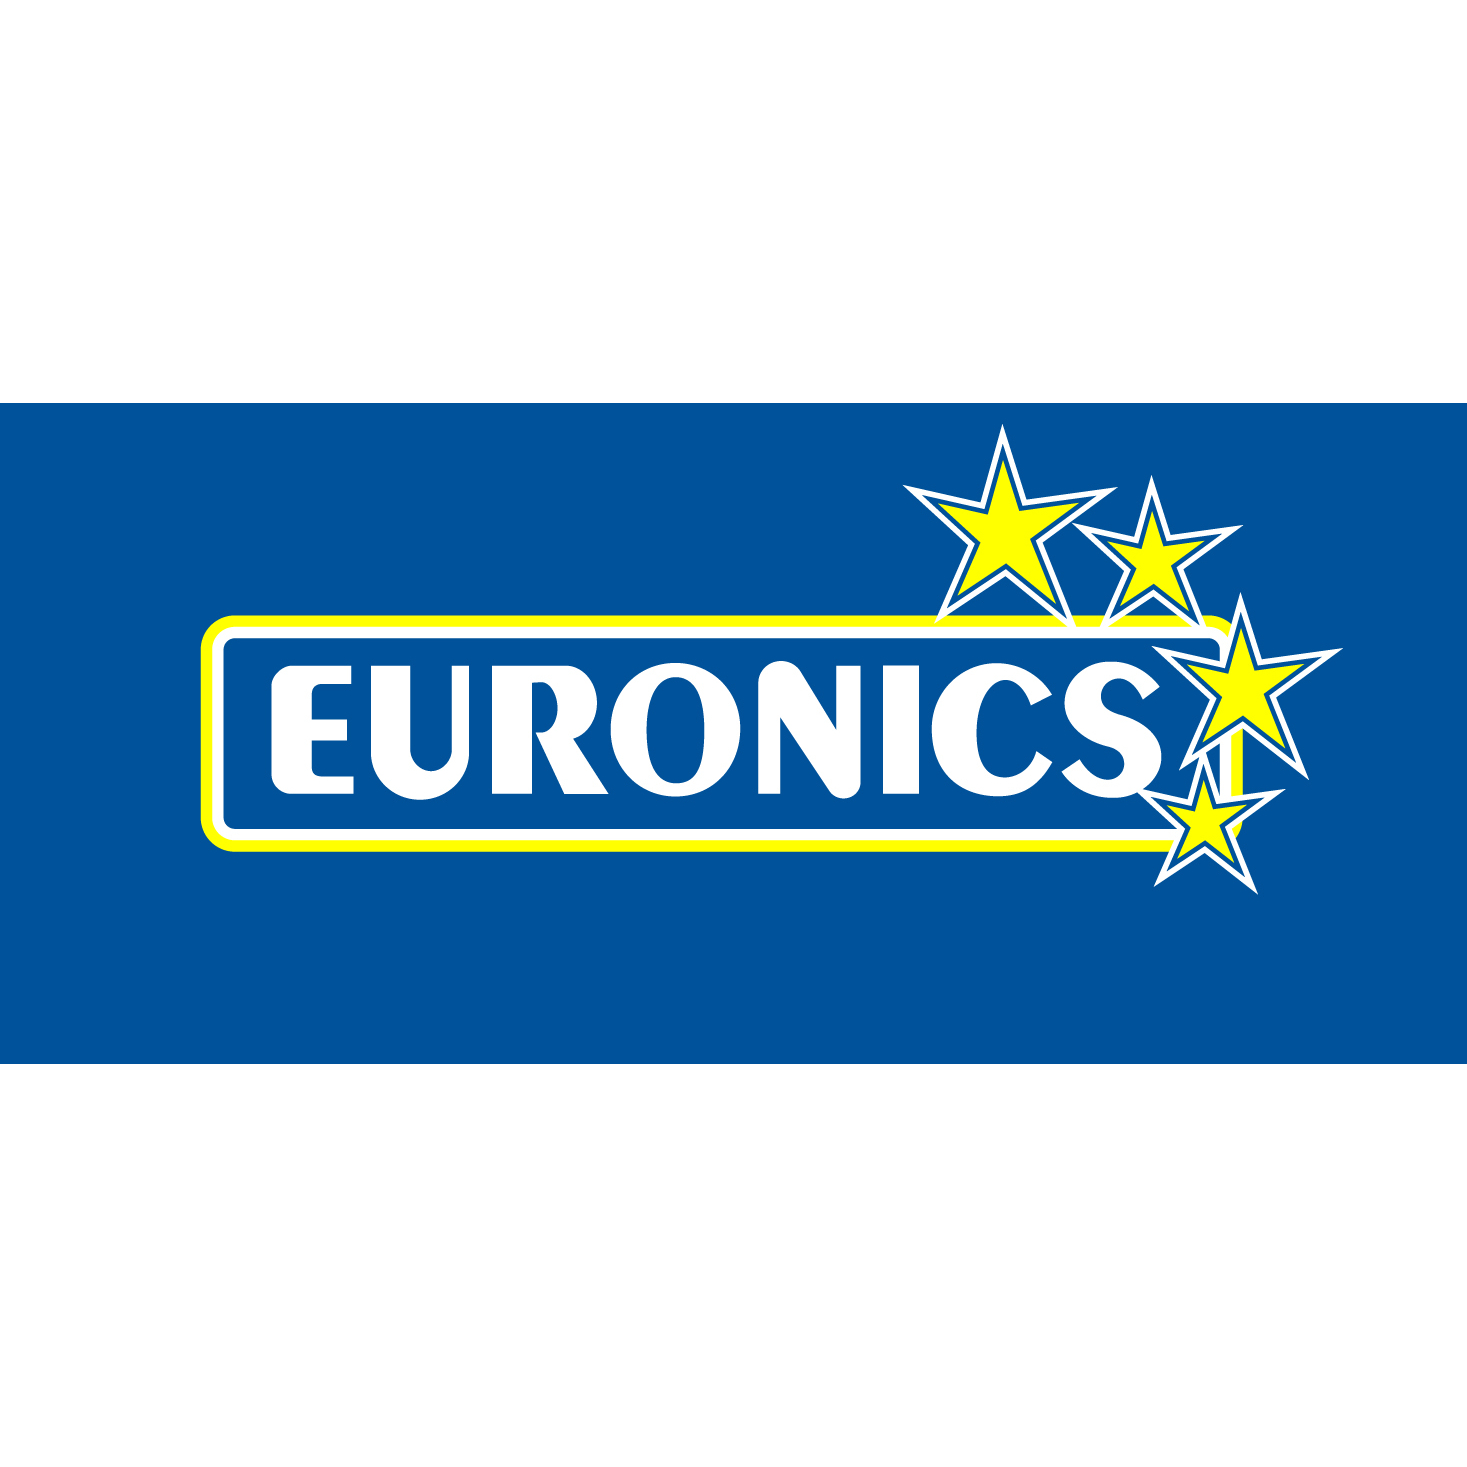 EURONICS ABE Multimediatechnik